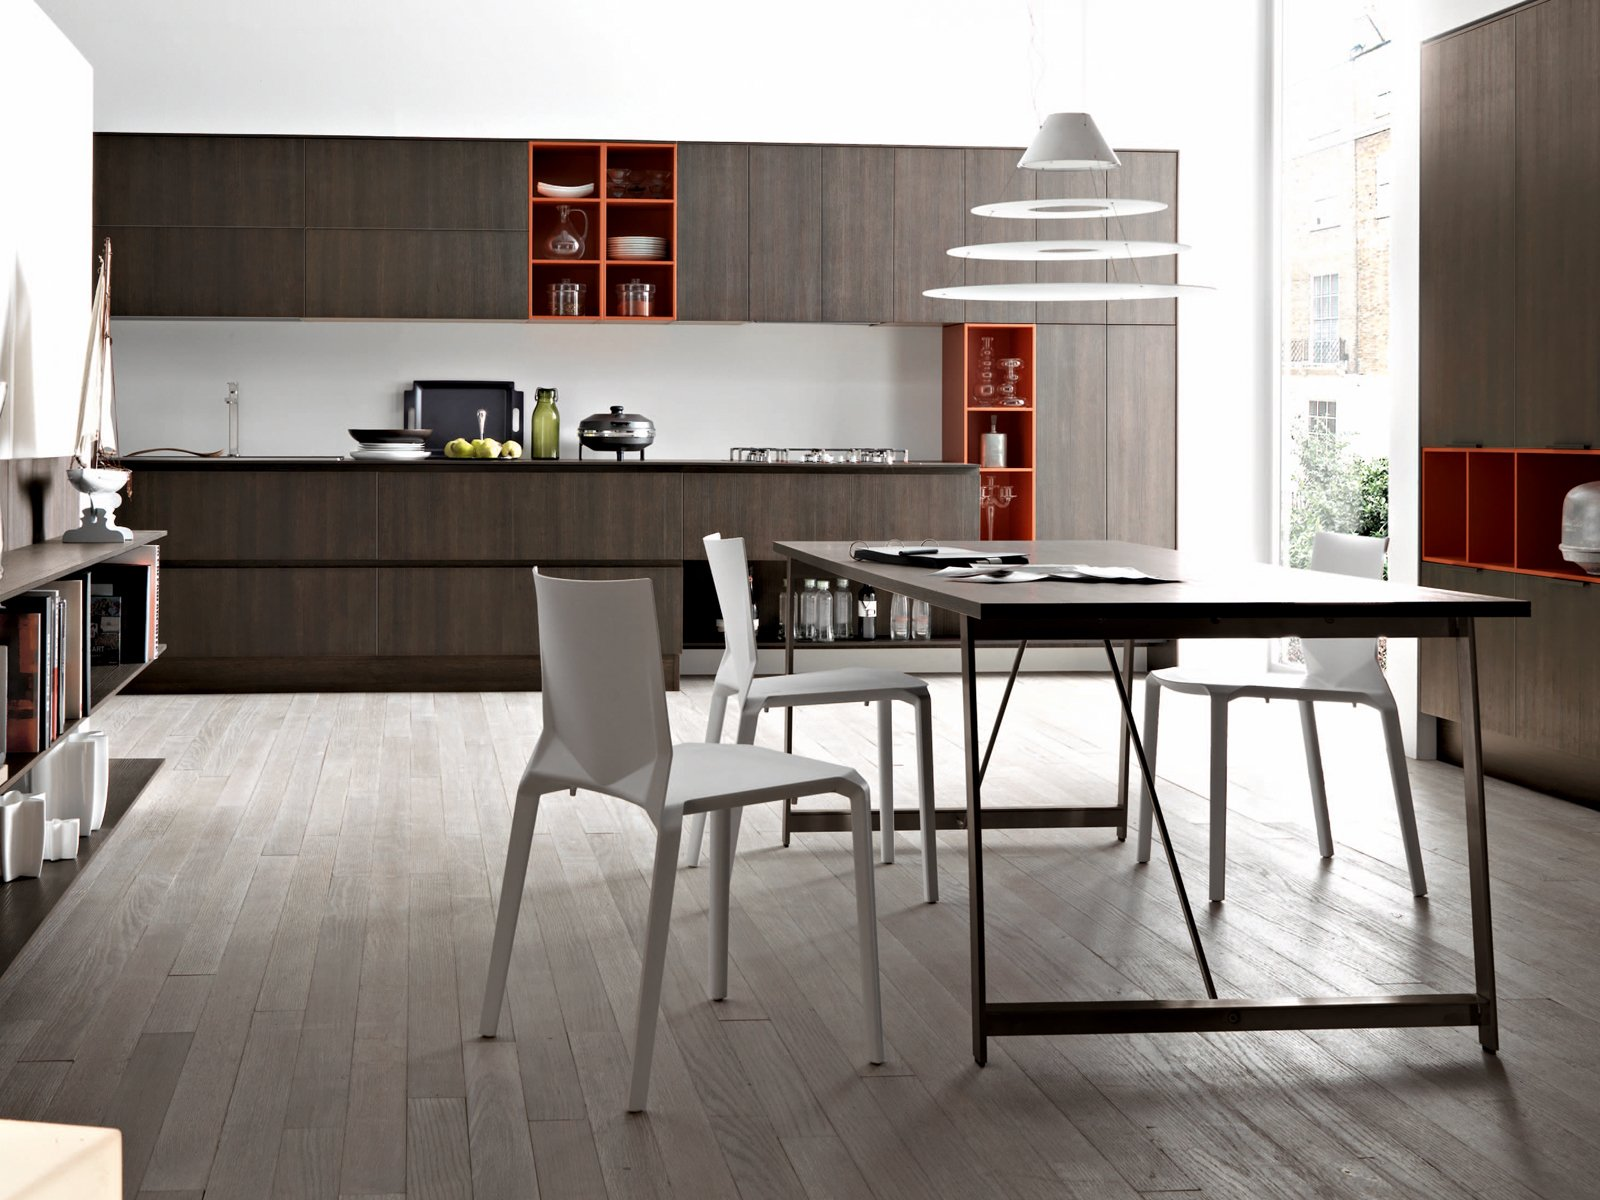 Leggi Anche Cucine Focus Sui Piani Cucine Colorate Come Un #955036 1600 1200 Foto Di Cucine Dipinte